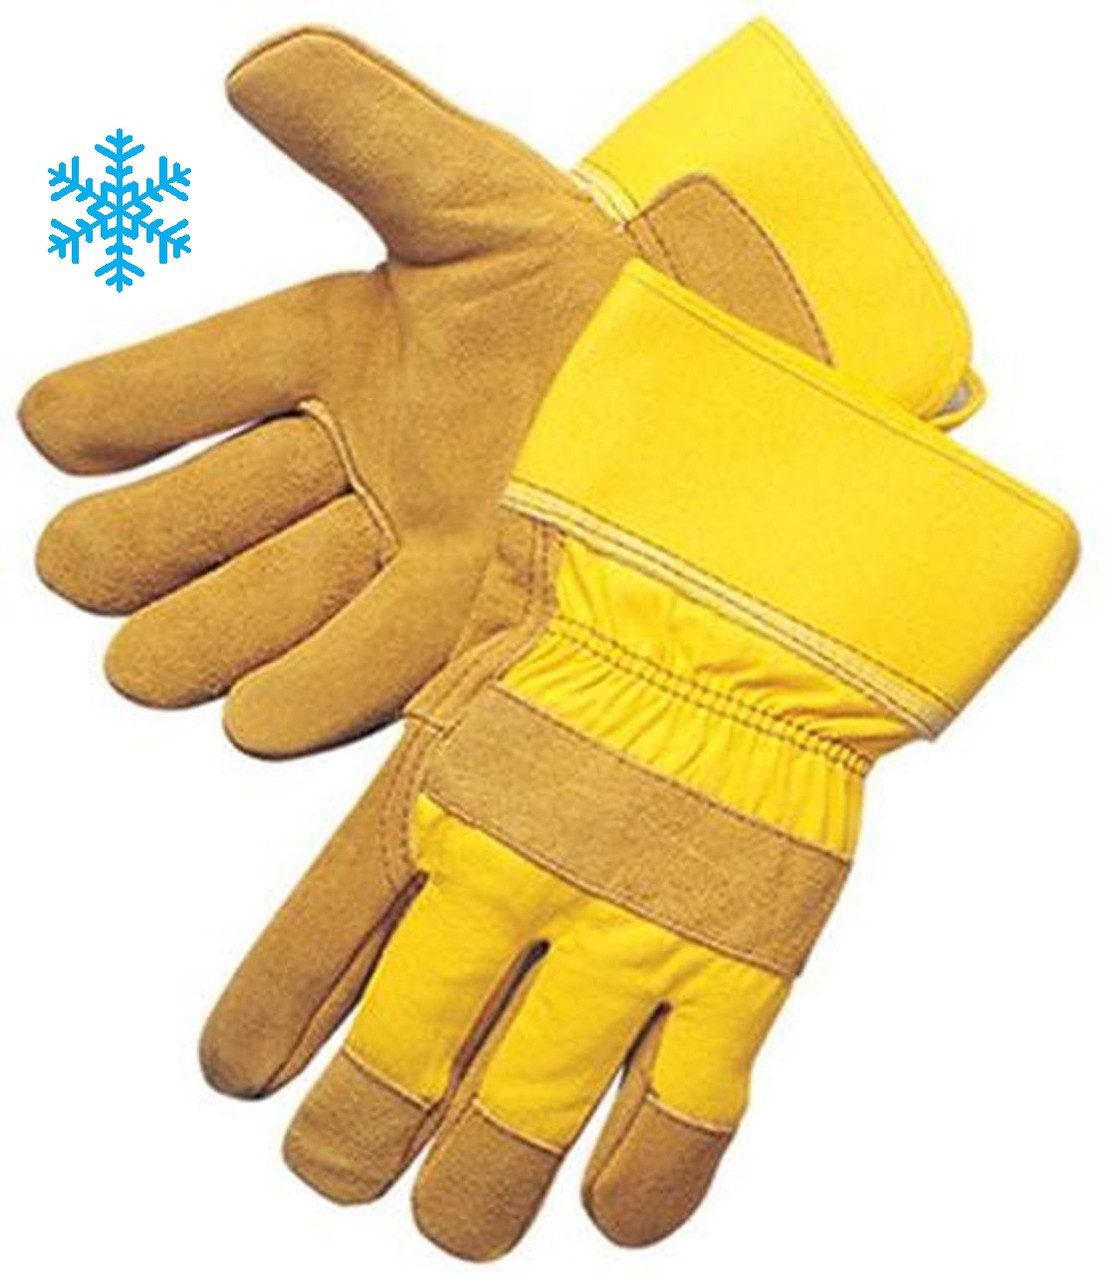 Insulated Split Cowhide Palm Work Gloves - Insulated Gloves   ## 3655 ##